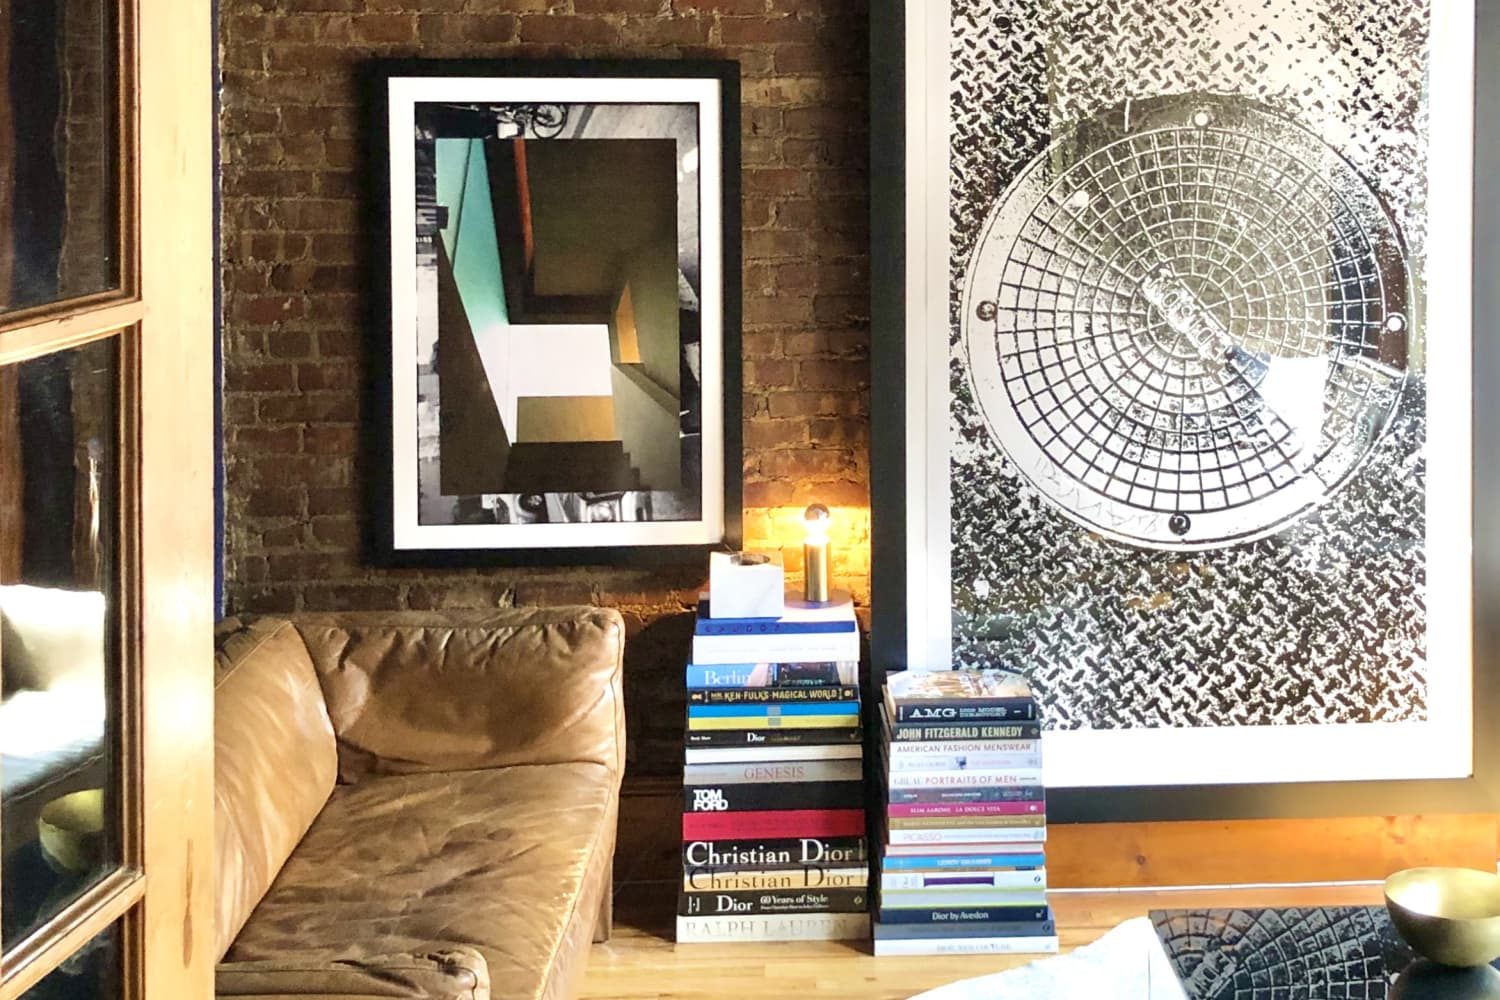 A 450-Square-Foot NYC Apartment Is Proof You Should Use Dark Colors in Small Spaces